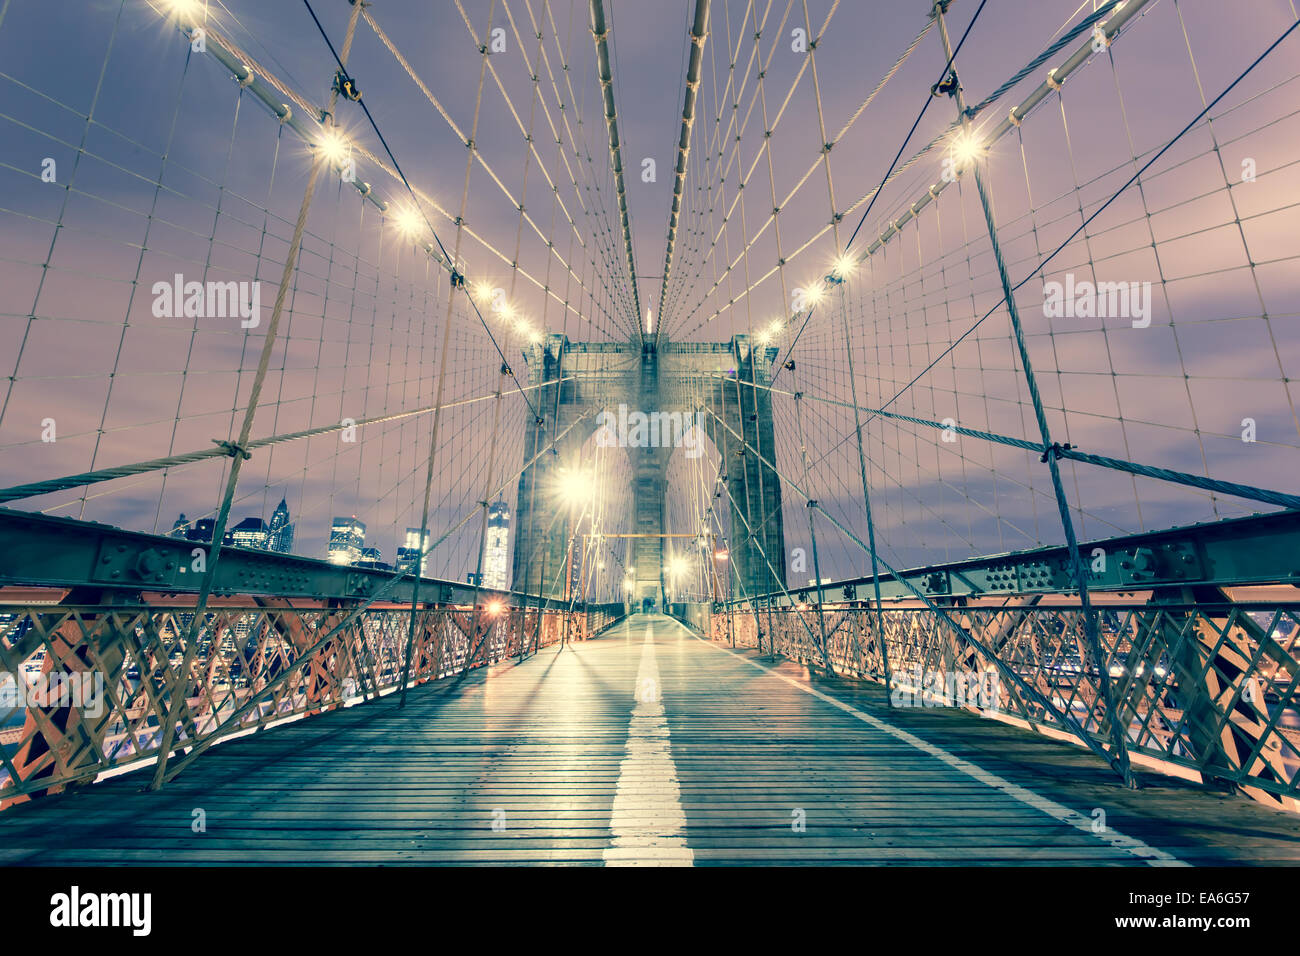 USA, New York State, New York City, View of Brooklyn Bridge Stock Photo